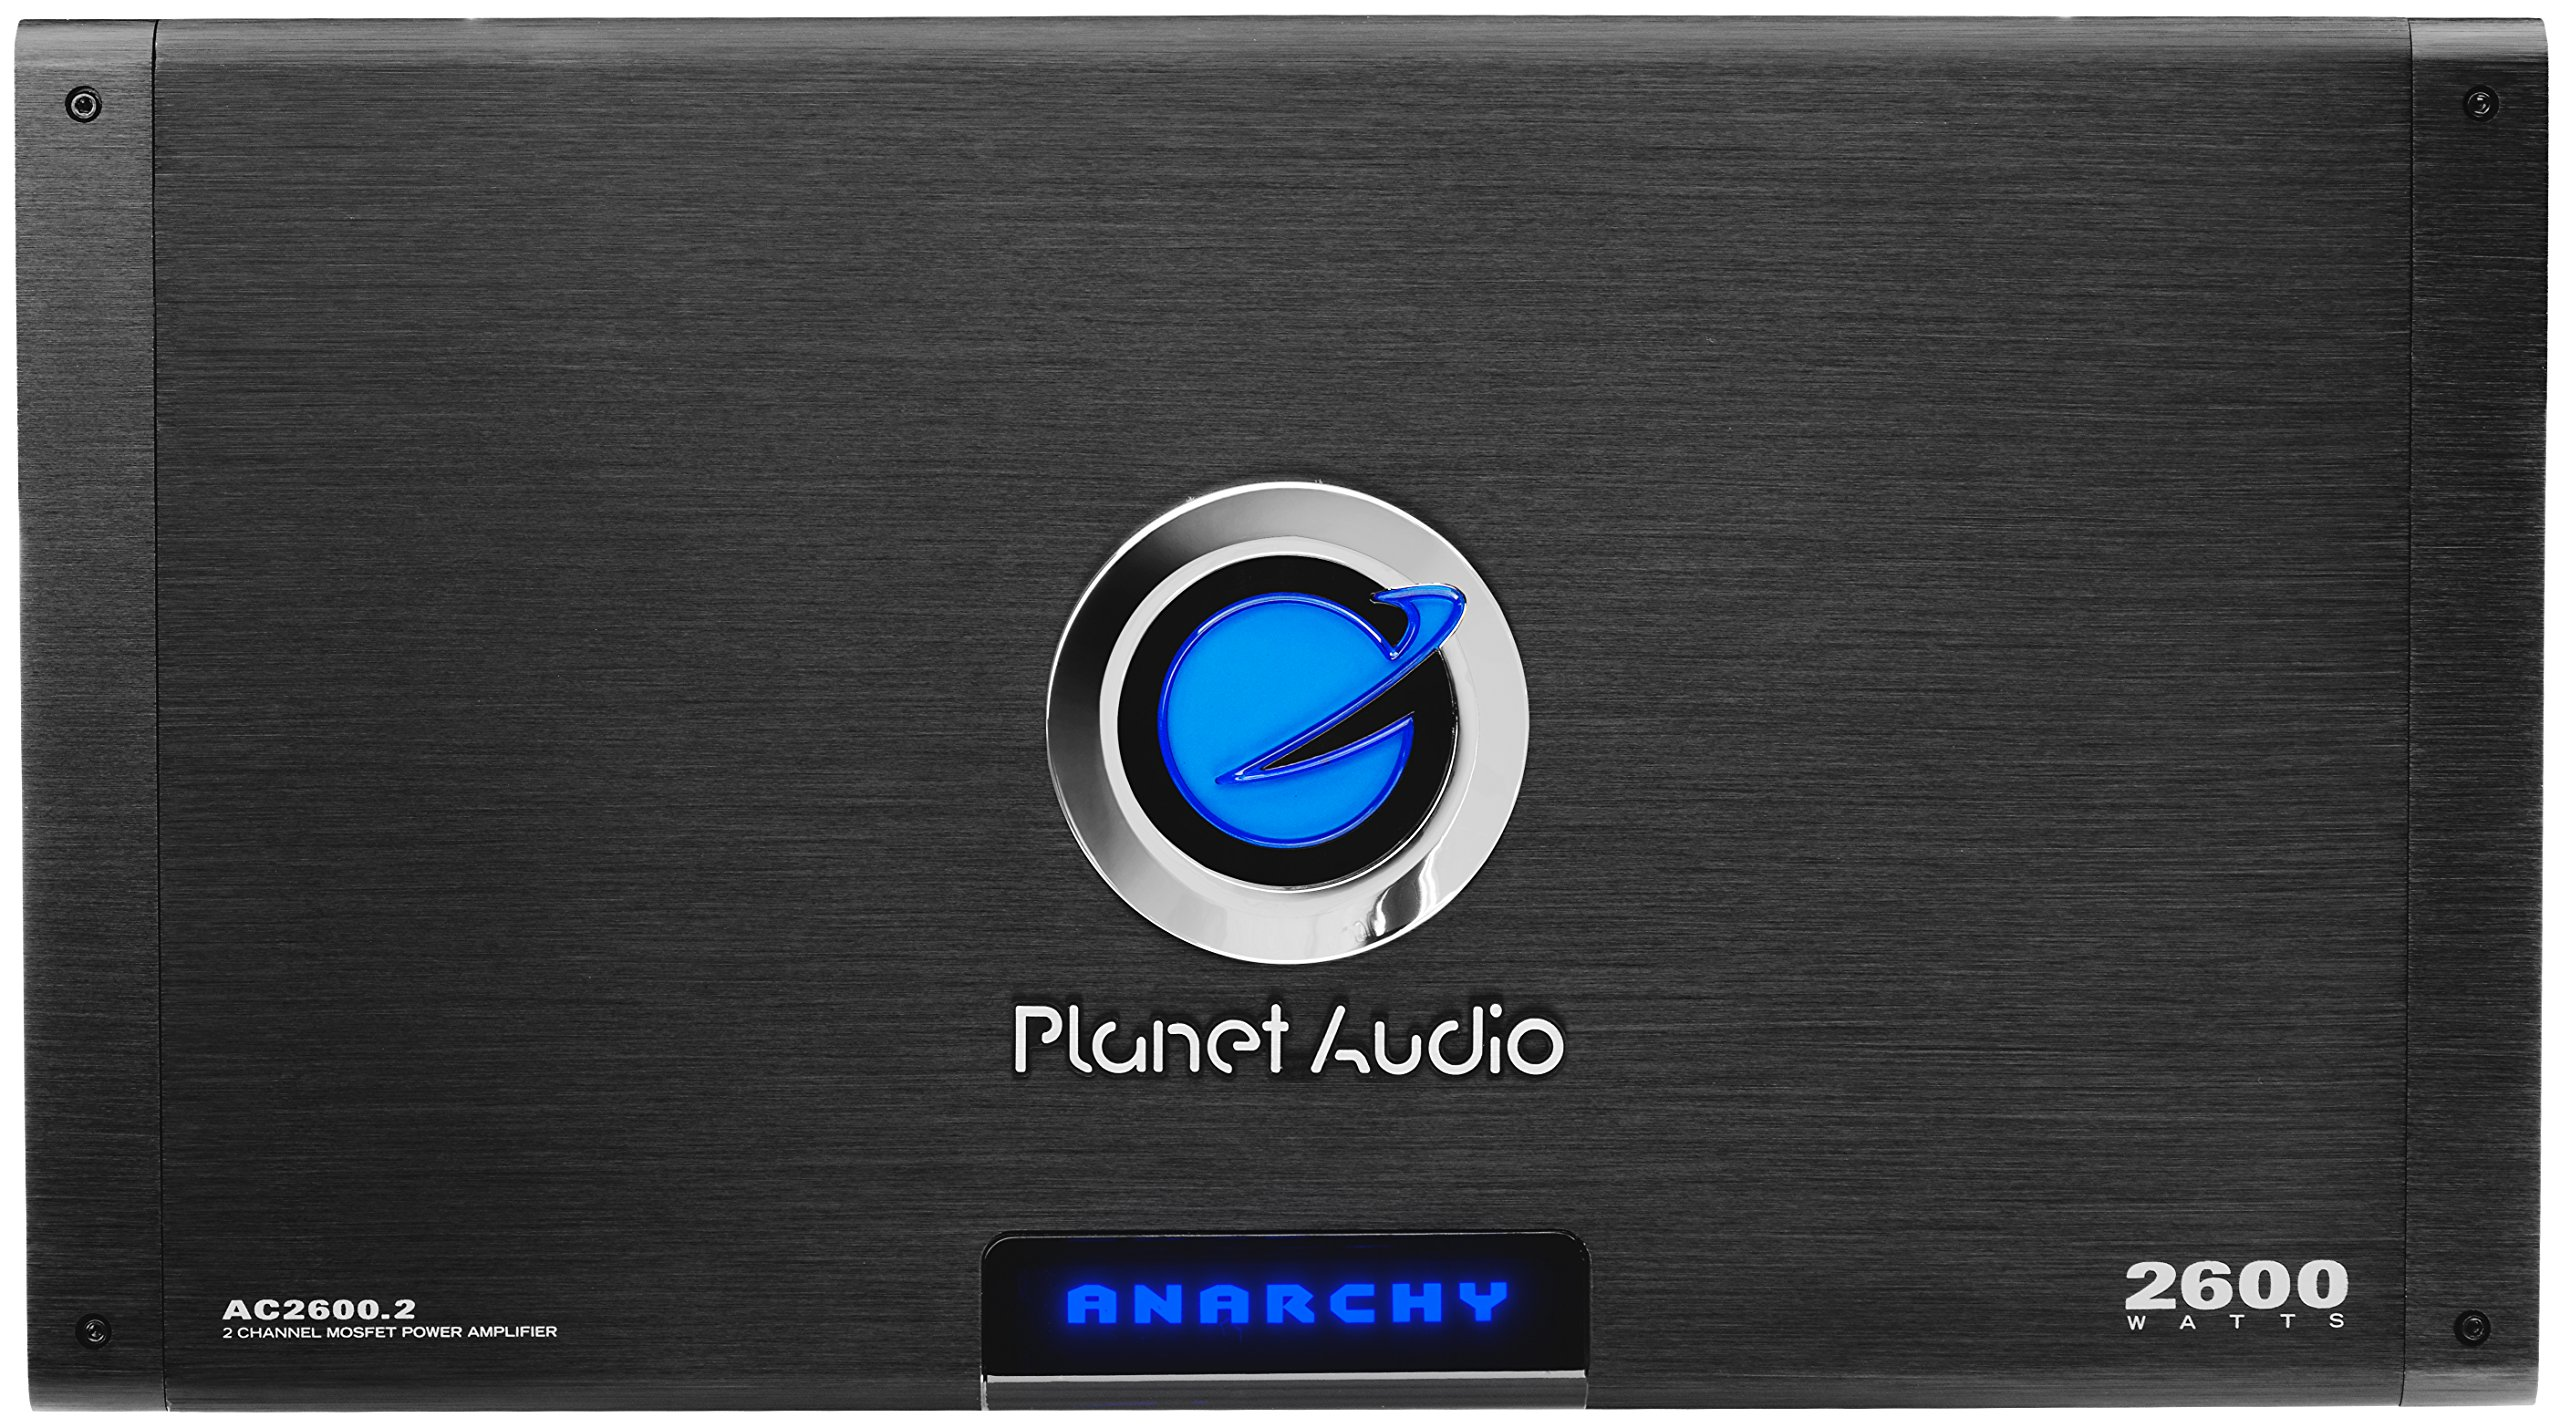 Planet Audio AC2600.2 Anarchy 2600 Watt, 2 Channel, 2/4 Ohm Stable Class A/B, Full Range, Bridgeable, MOSFET Car Amplifier with Remote Subwoofer Control